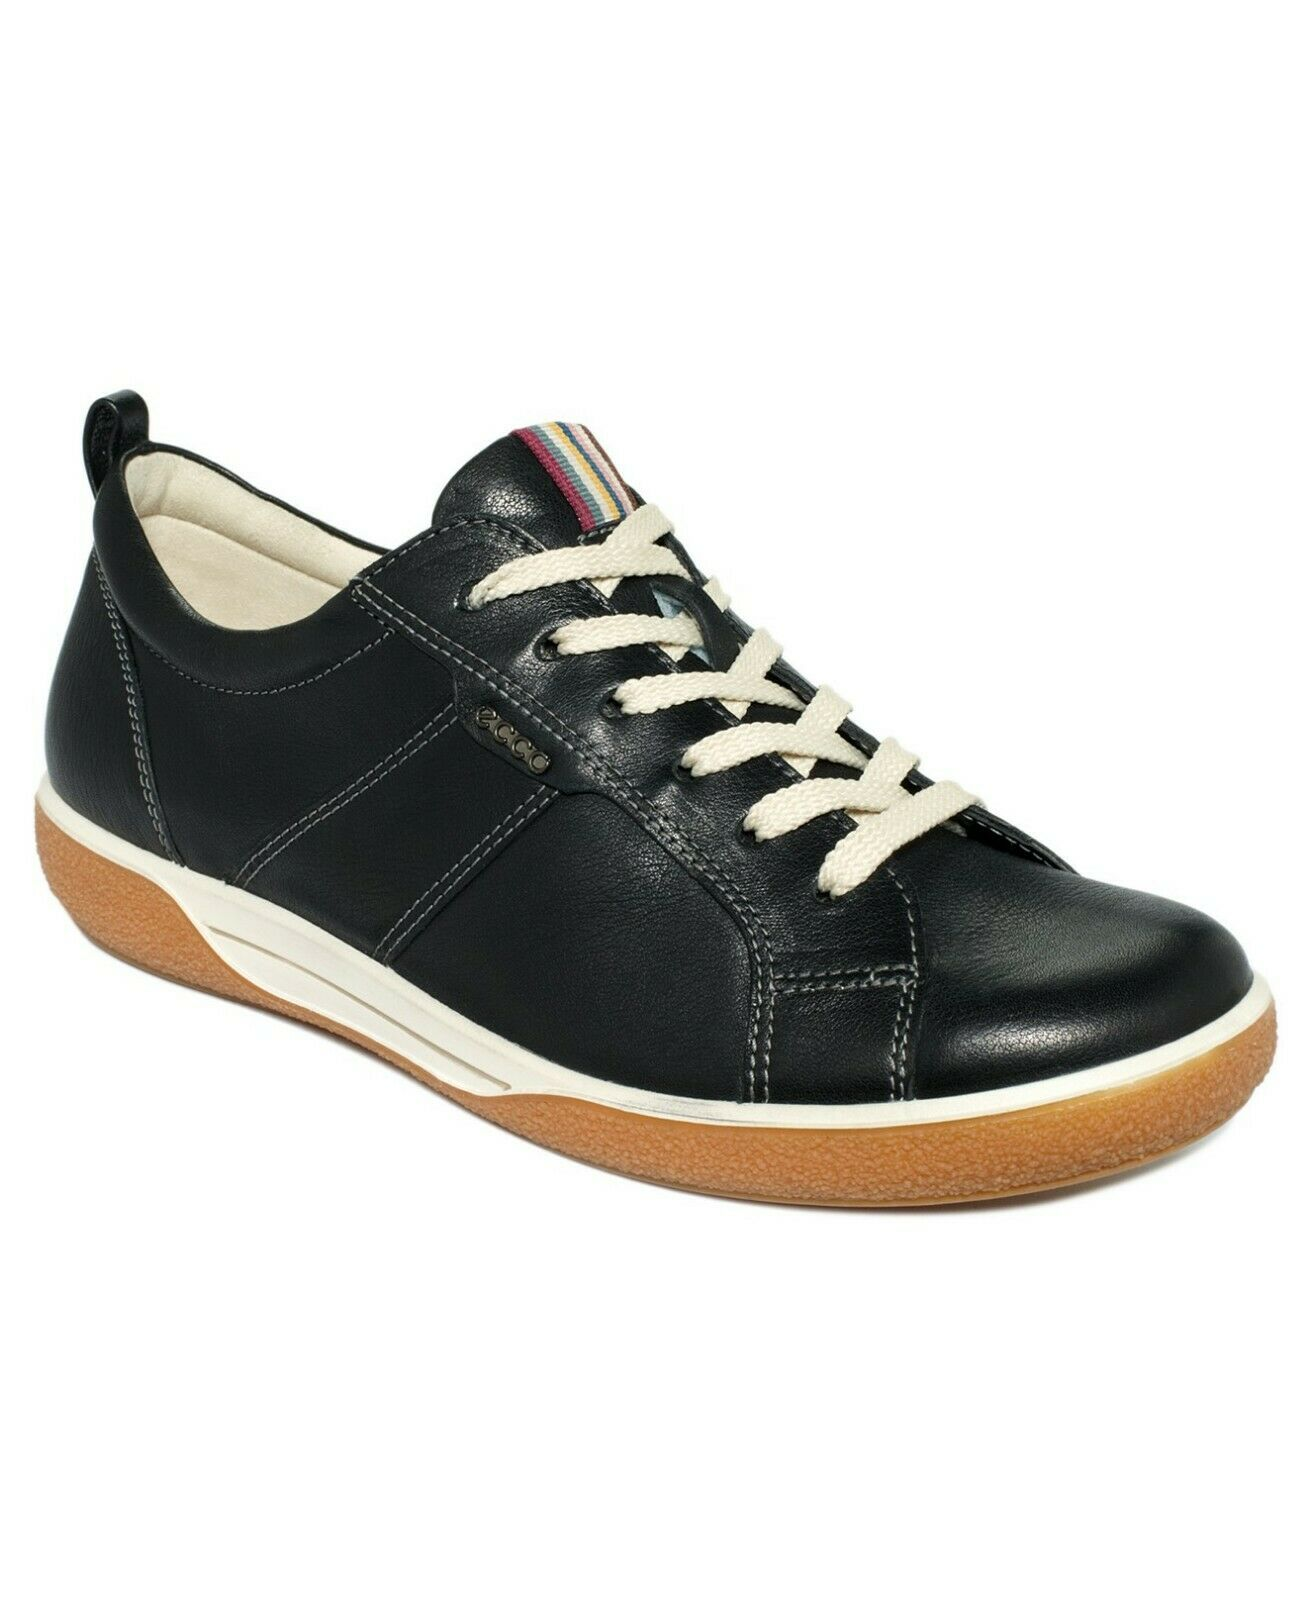 ECCO Women's Chase Lace Up Tie Marine Leather Sneakers shoes 41(EU) 10-10.5(US)